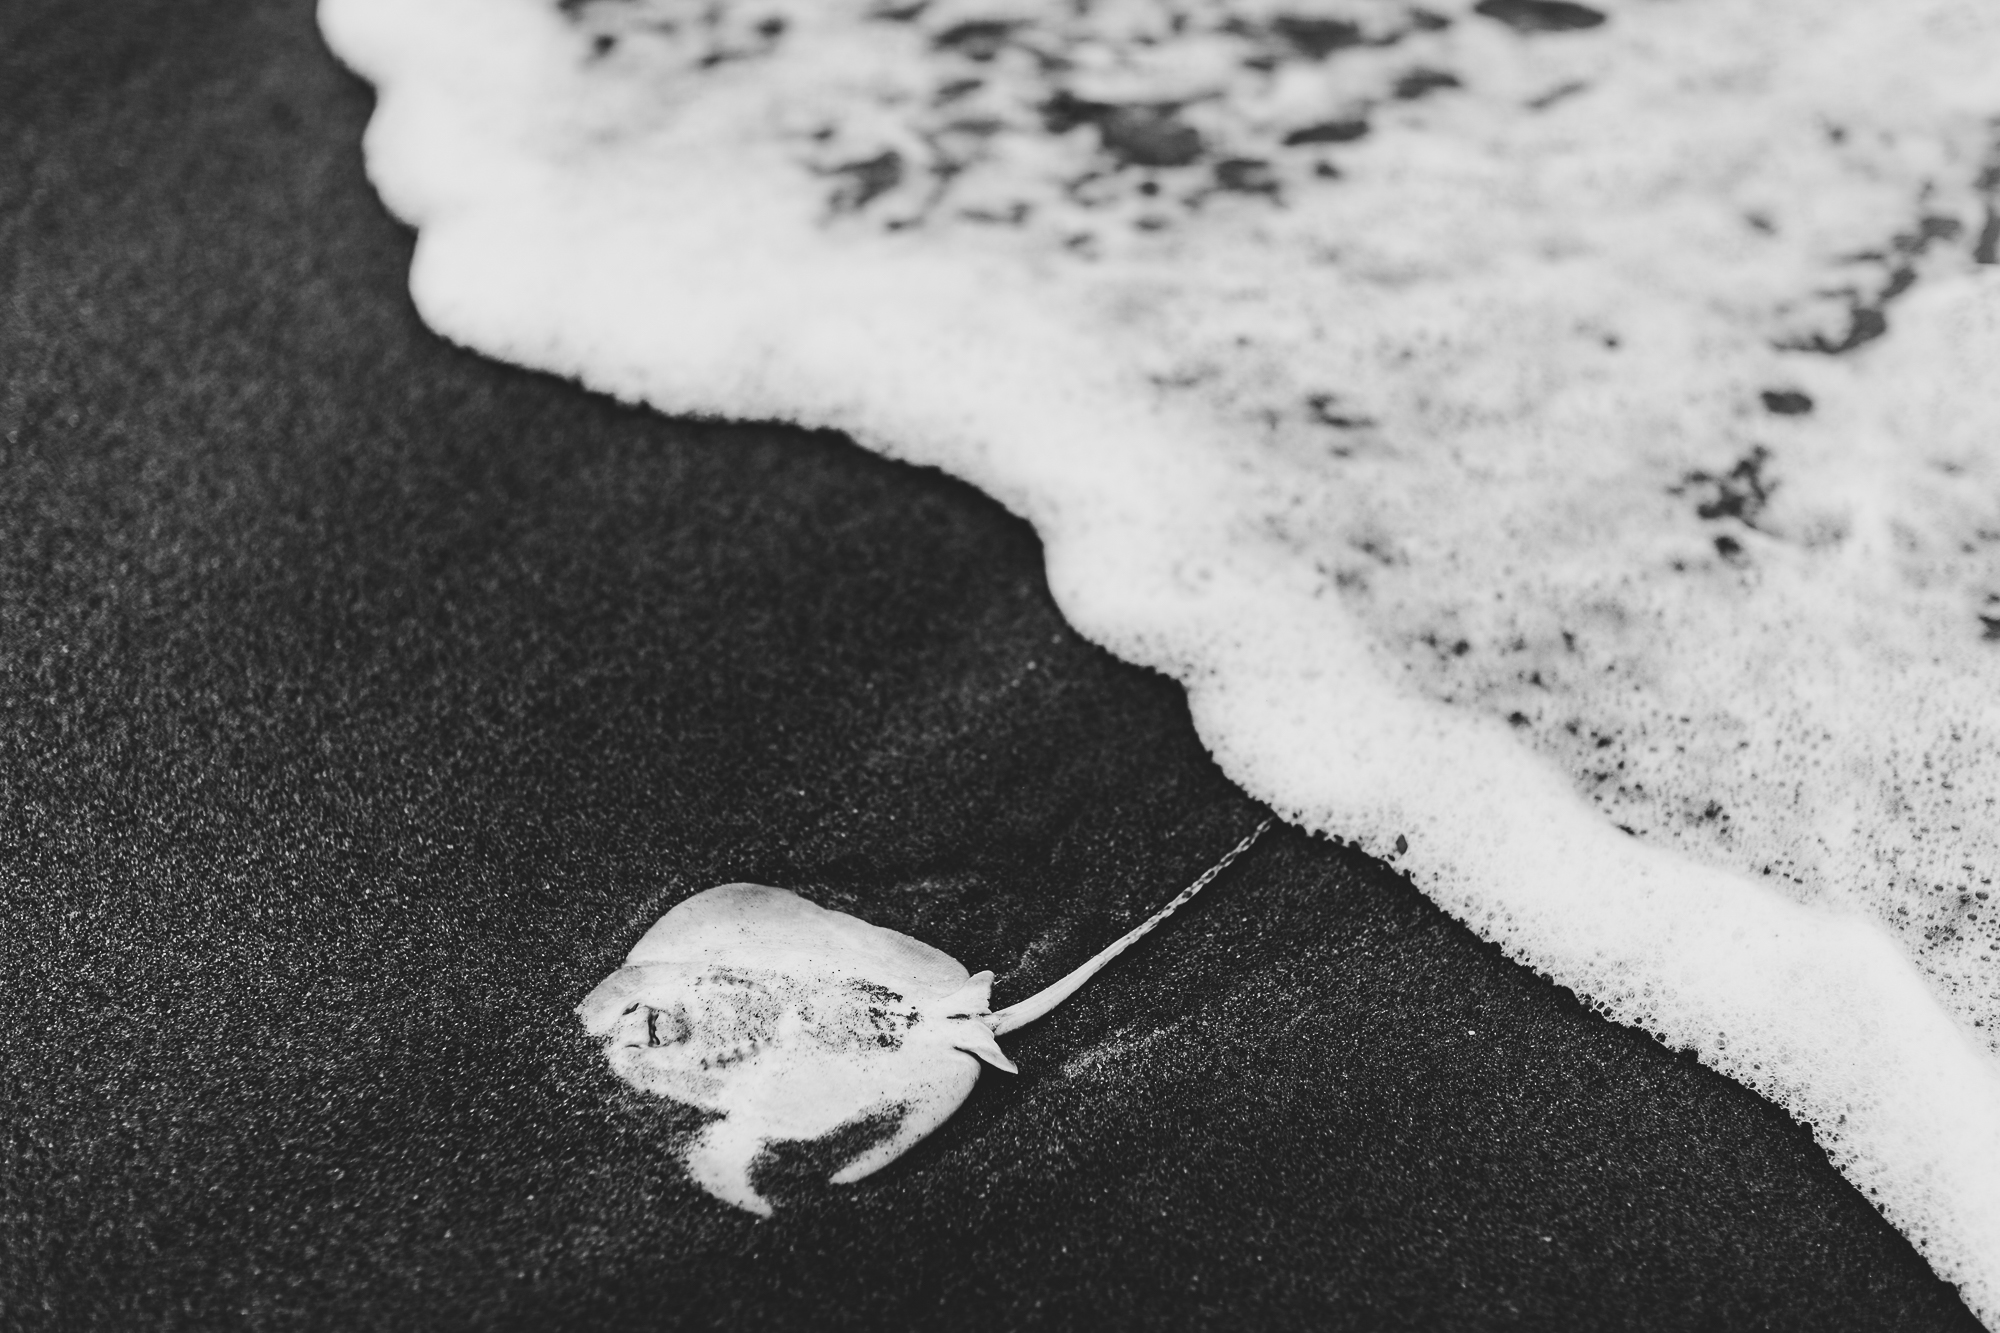 Dead Sting Ray on Beach